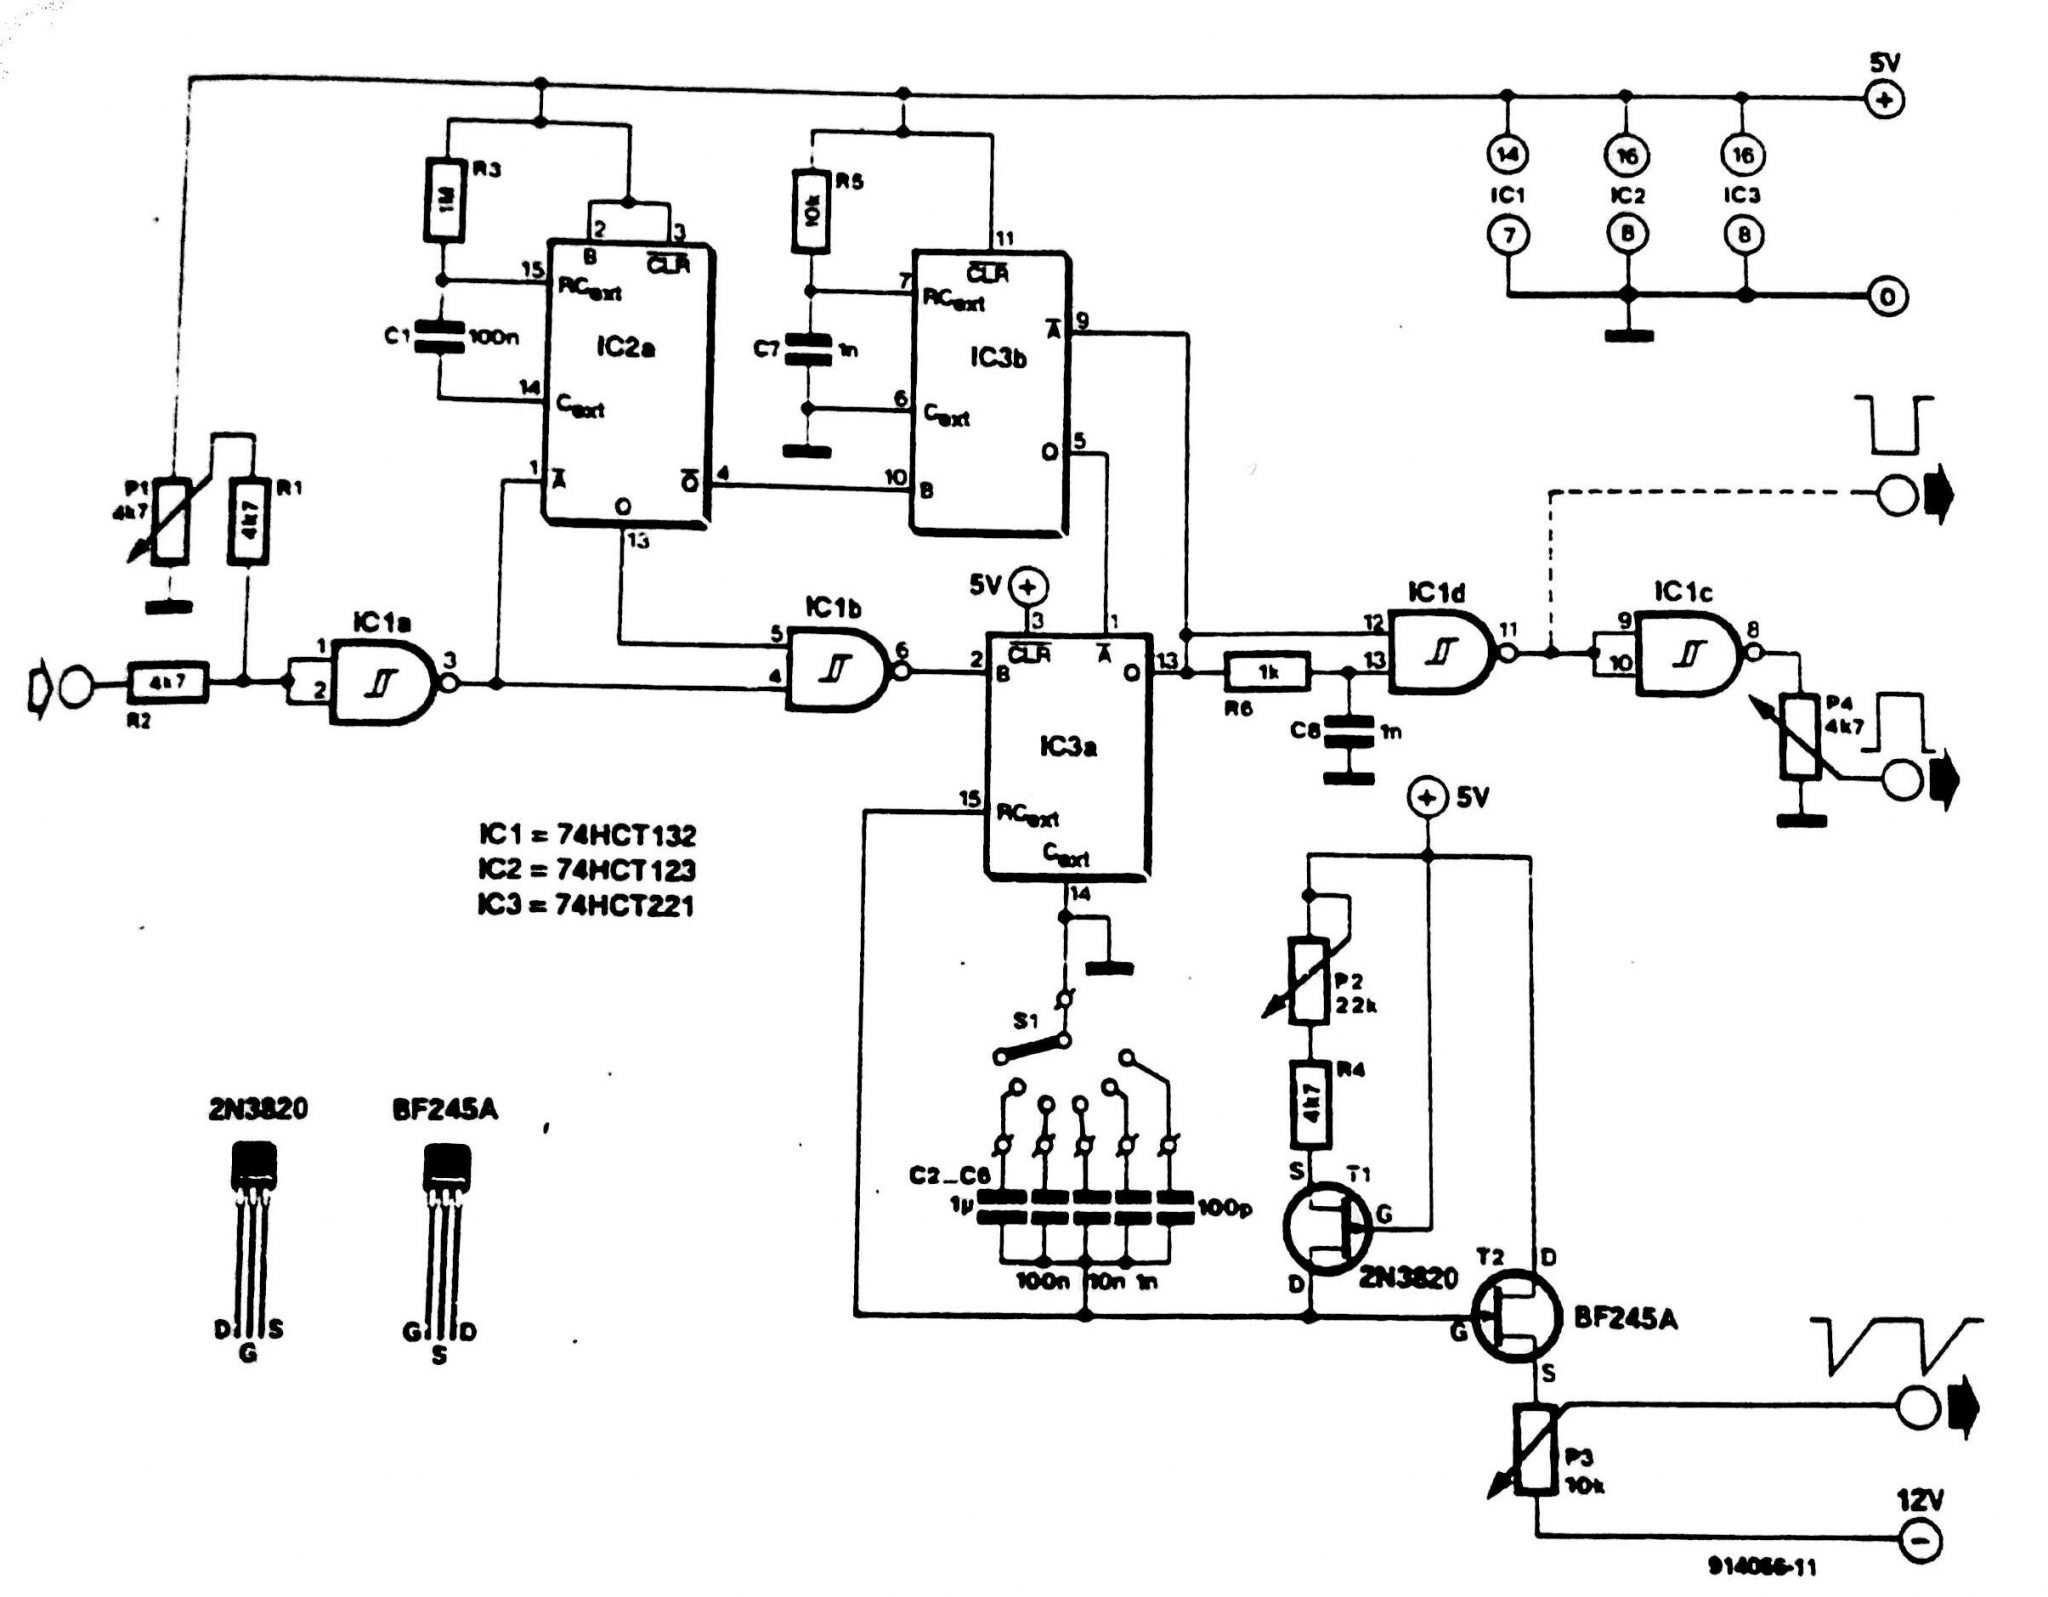 Generator Circuit Diagram Trusted Wiring Diagrams Sawtooth And Pulse Tradeoficcom Triggered Electrical Relay